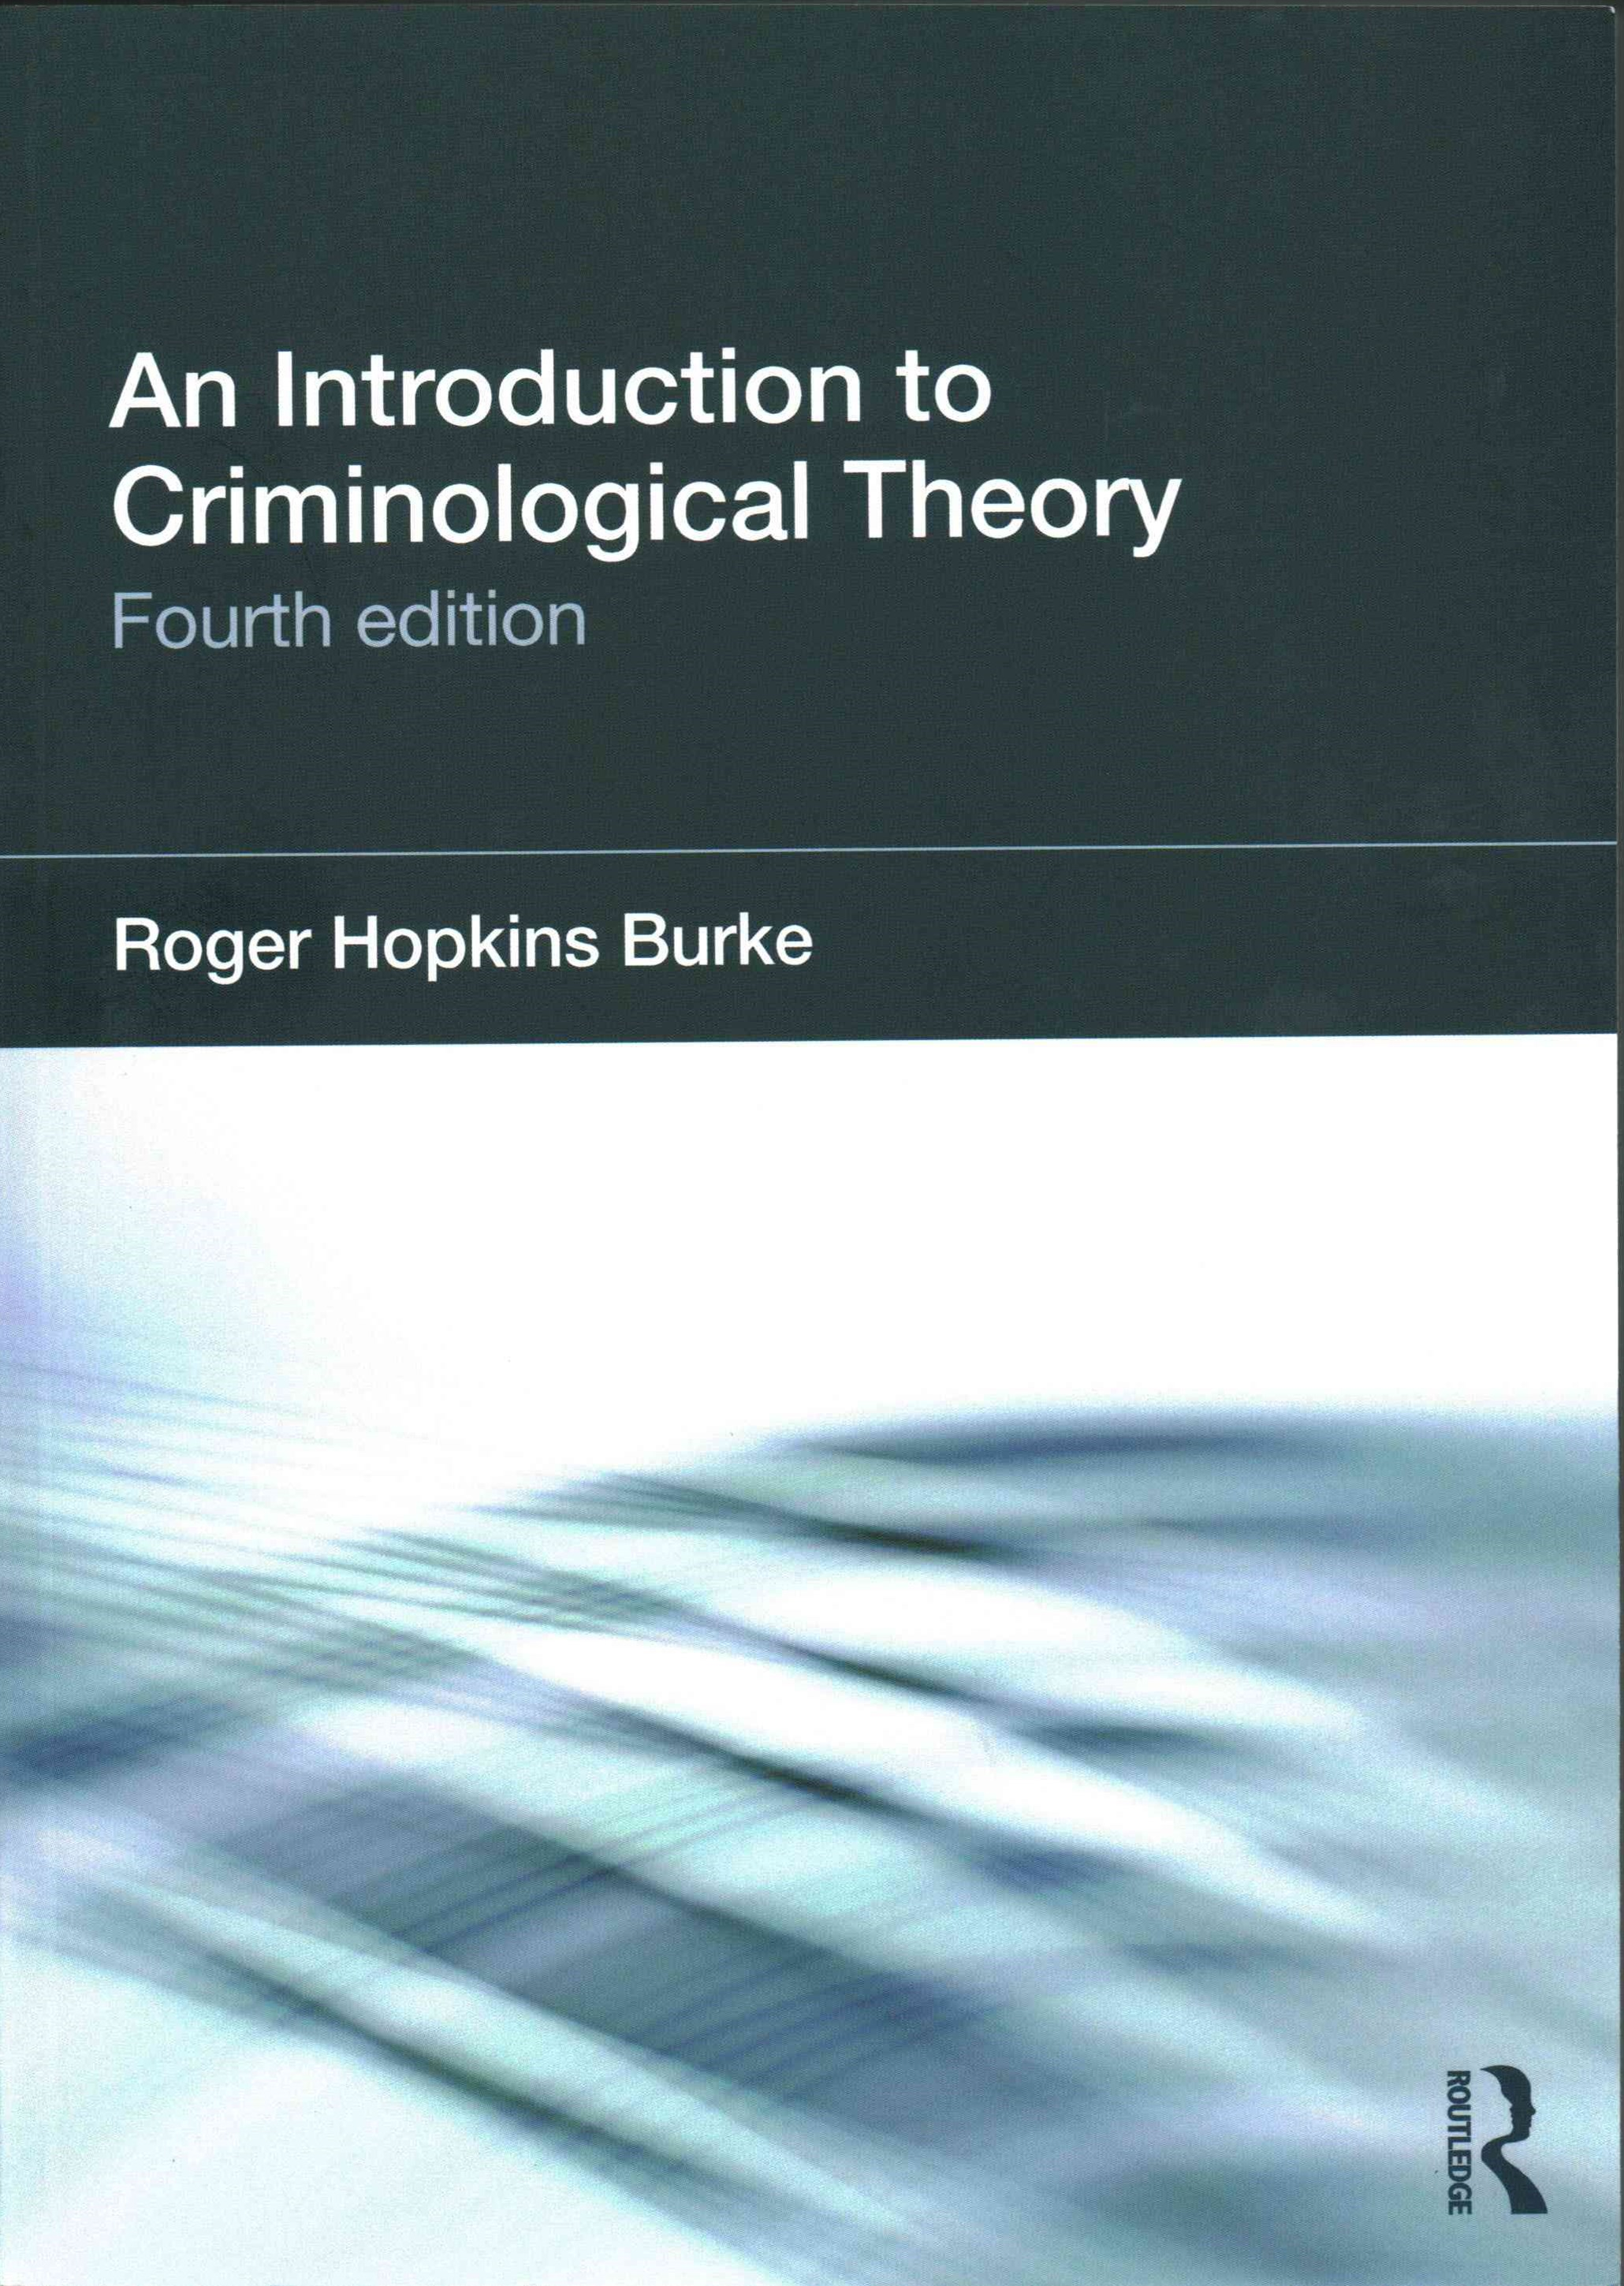 Introduction to Criminological Theory